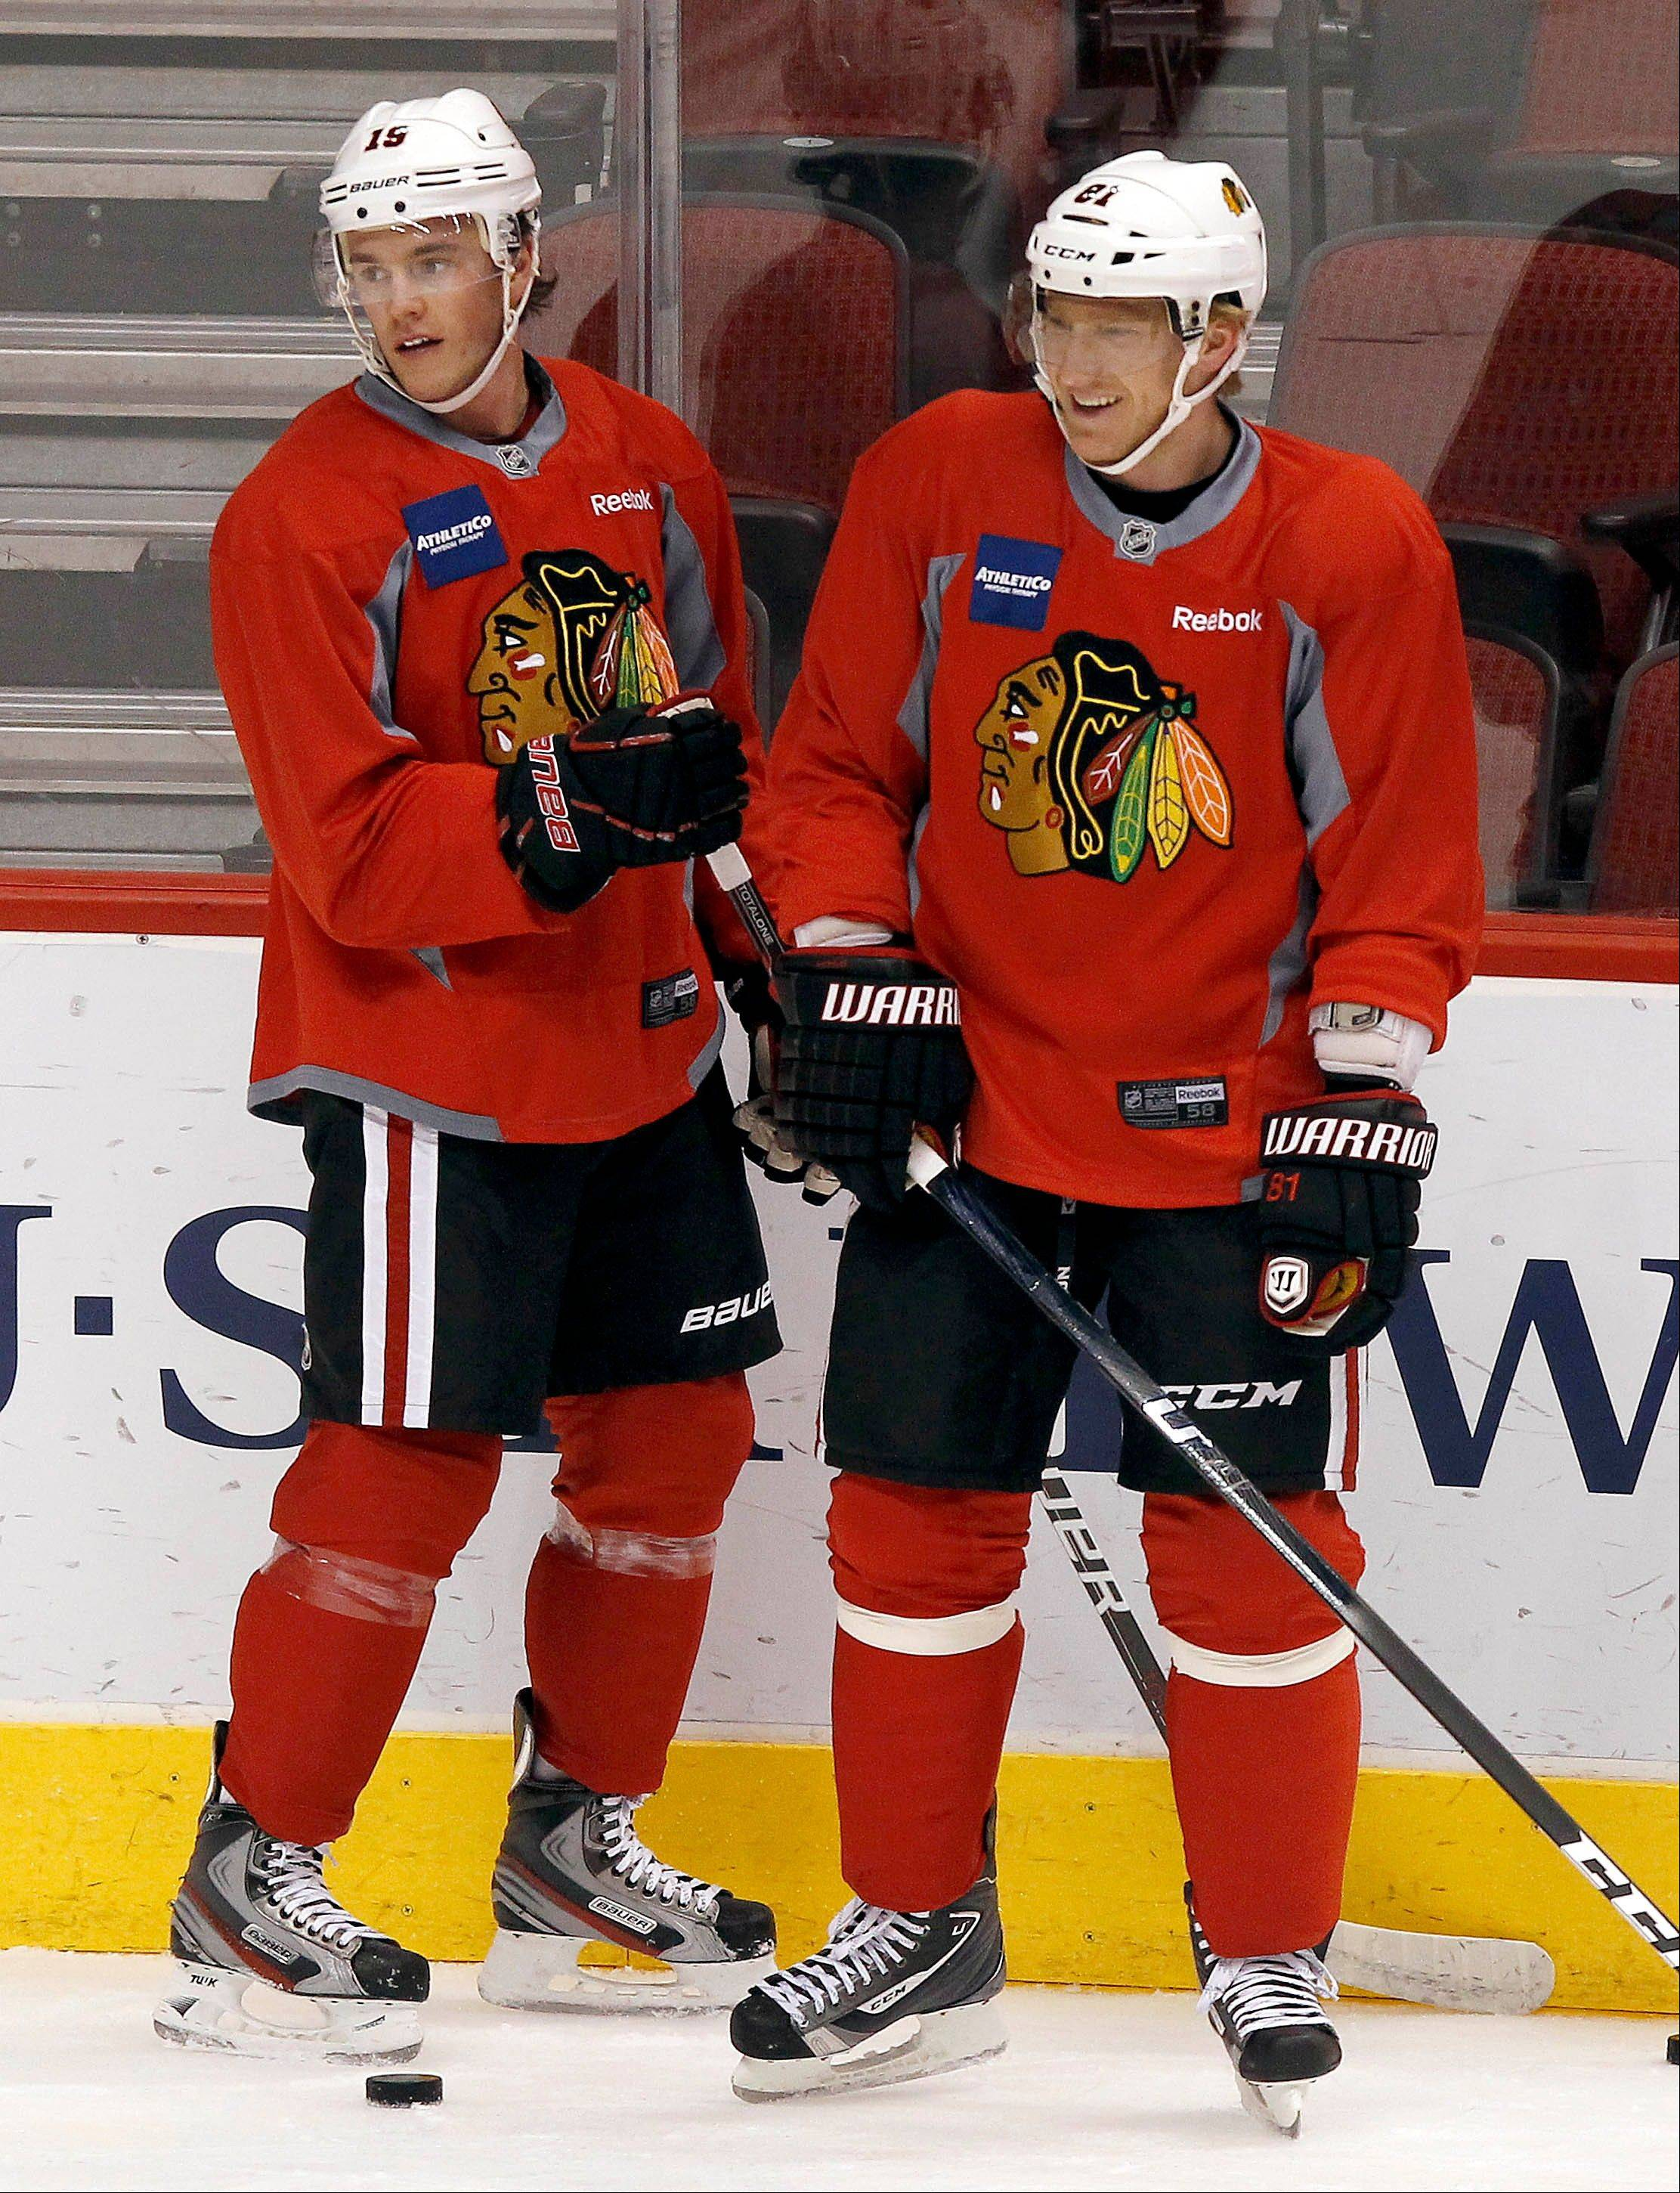 Hawks optimistic Toews will play Thursday